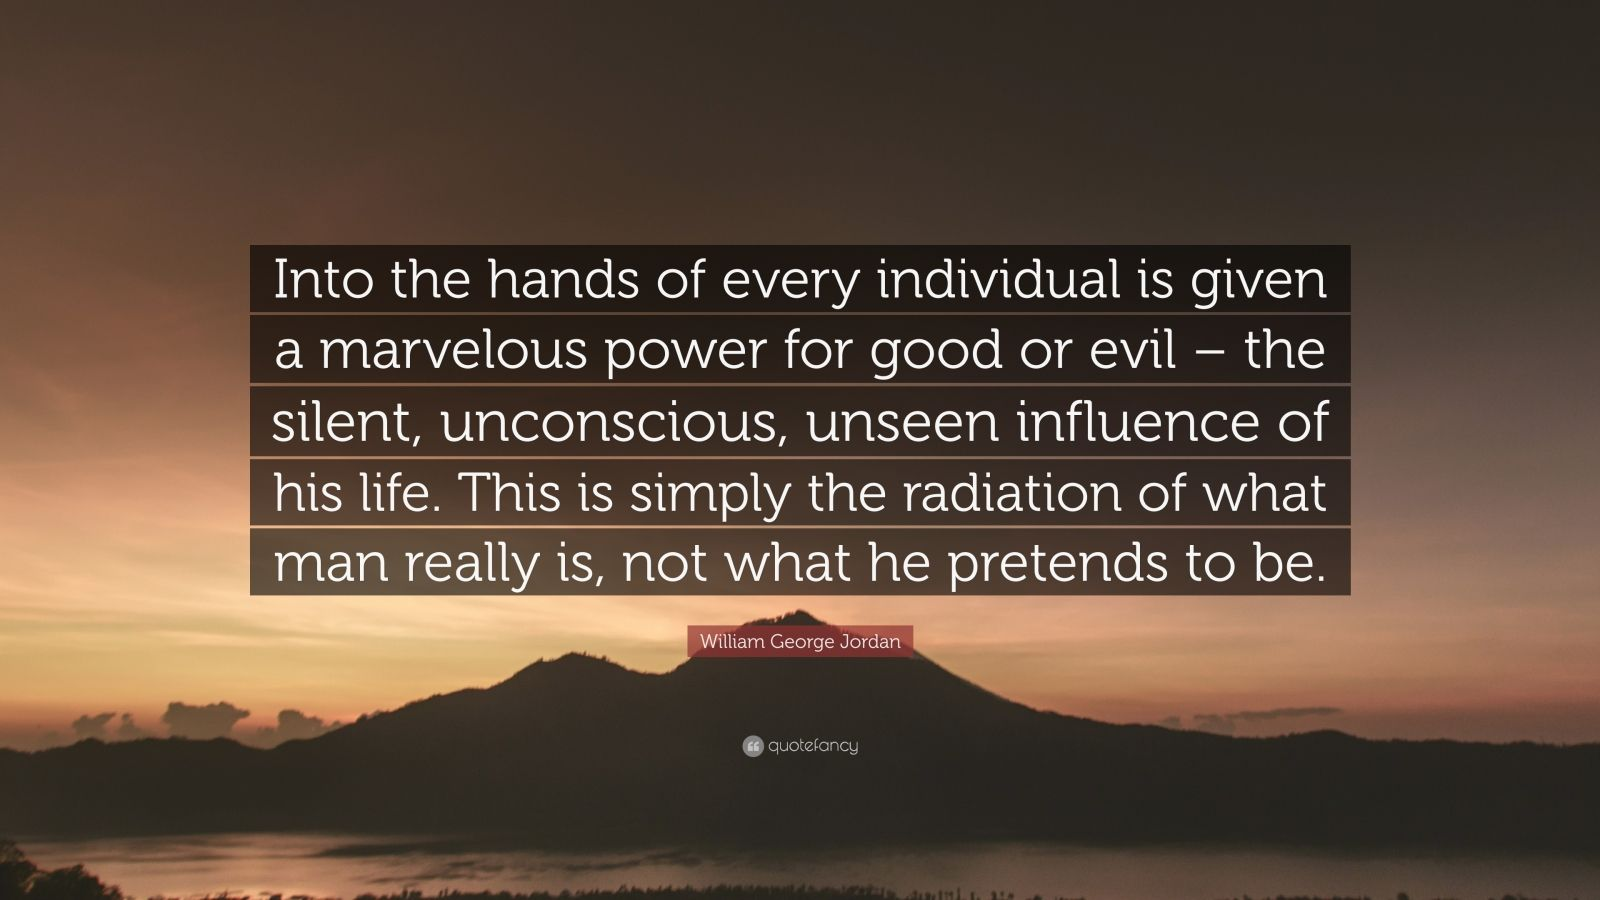 """William George Jordan Quote: """"Into the hands of every individual is given a marvelous power for good or evil – the silent, unconscious, unseen influence of his life. This is simply the radiation of what man really is, not what he pretends to be."""""""